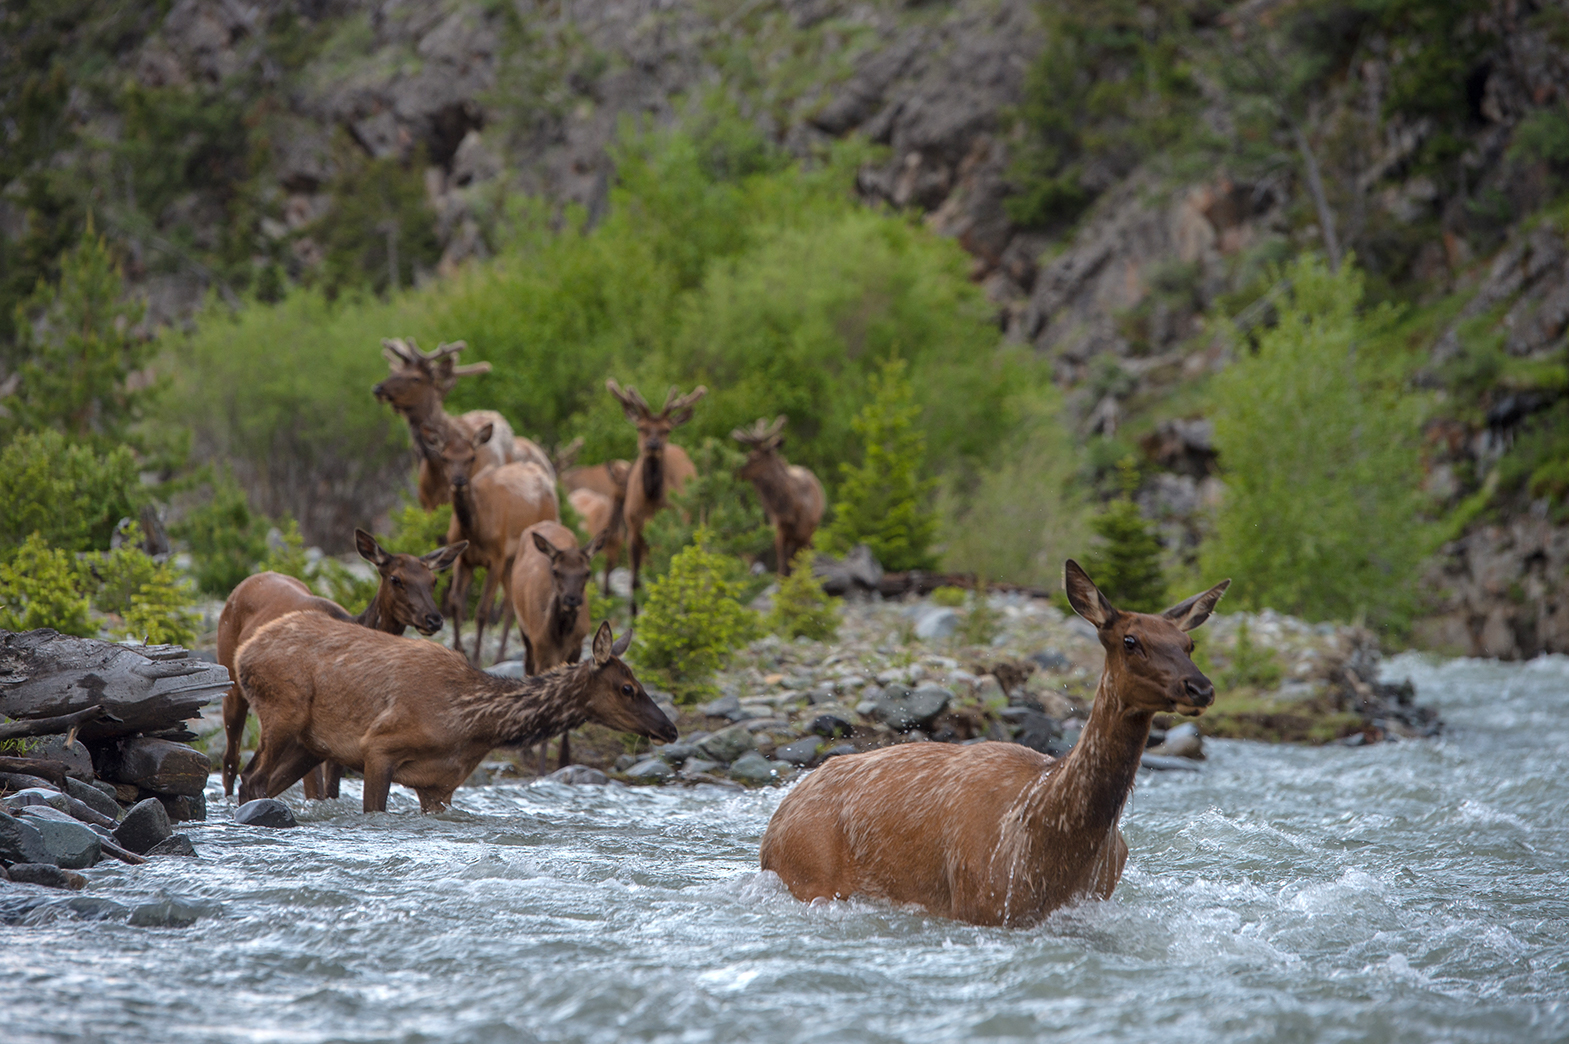 Cow elk leads other elk into the Shoshone River during spring migration.